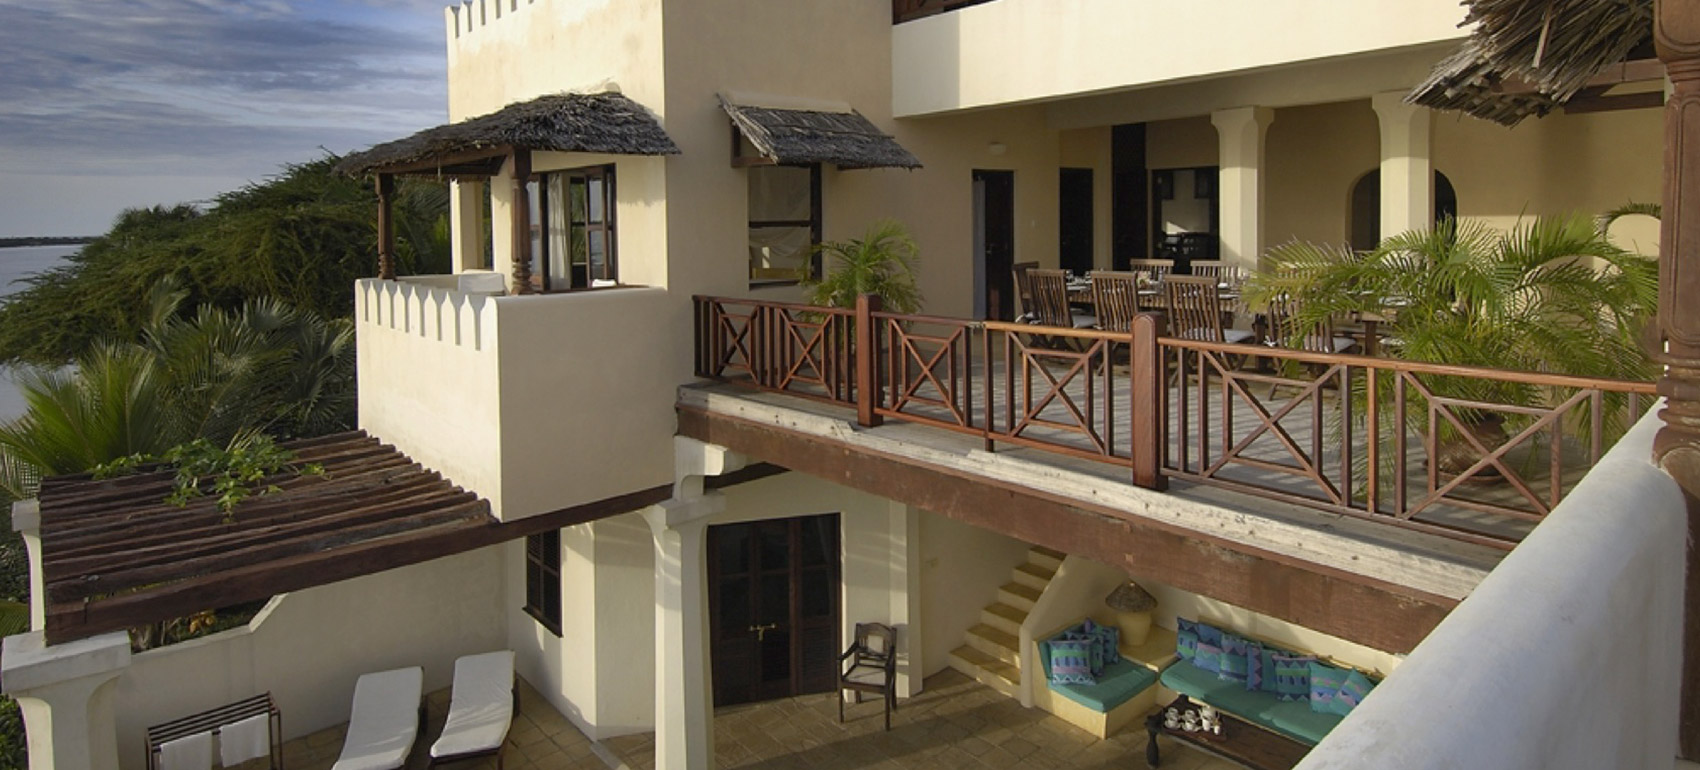 shela-beach-house-gallery-08